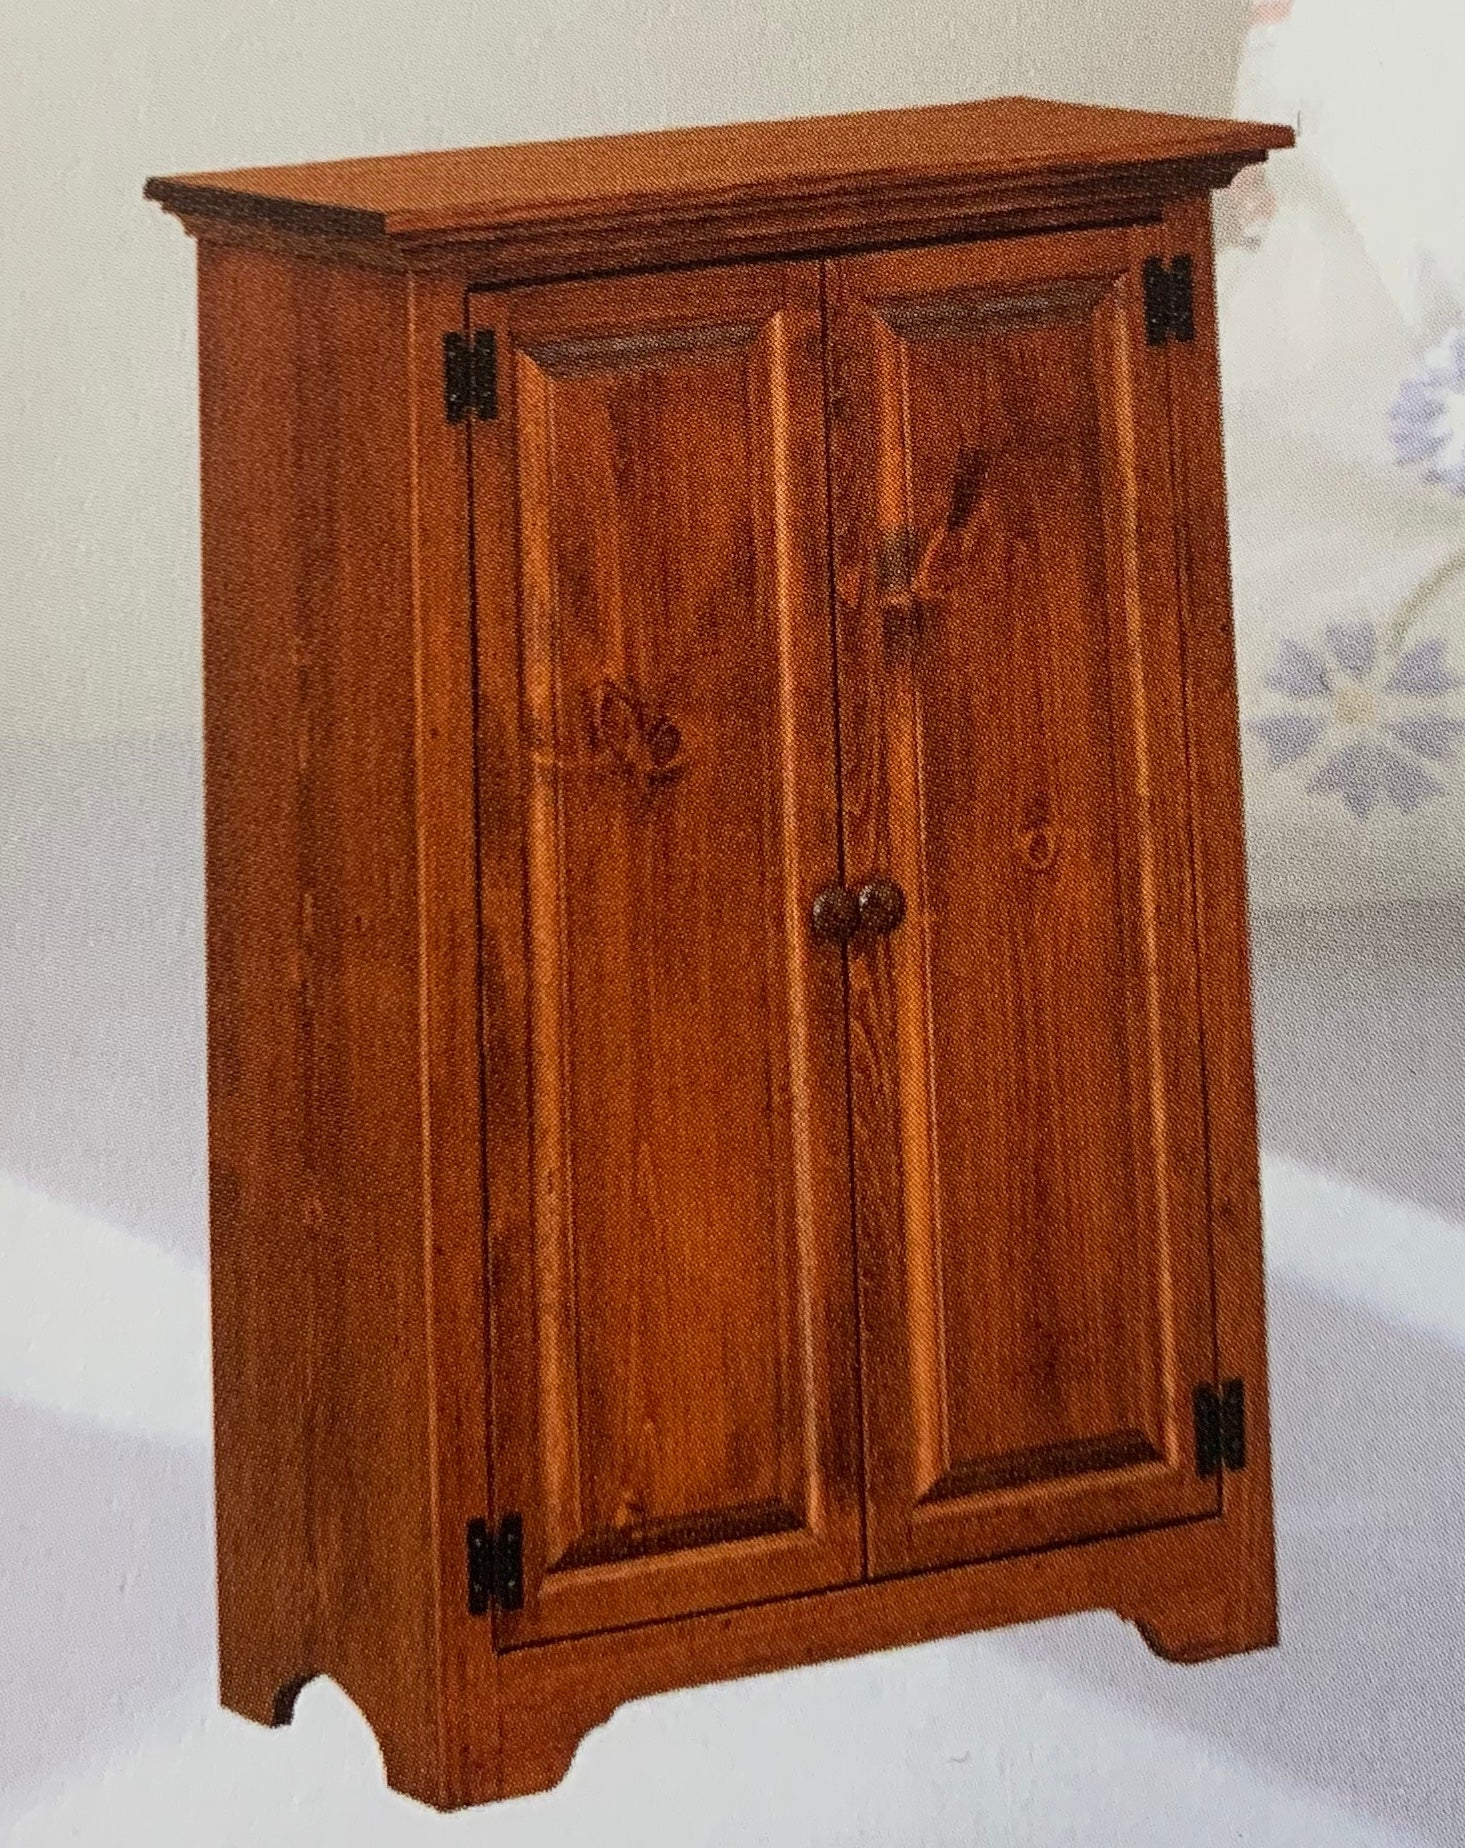 Low Bookcases With Doors: Cherry Small Bookcase With Solid Doors